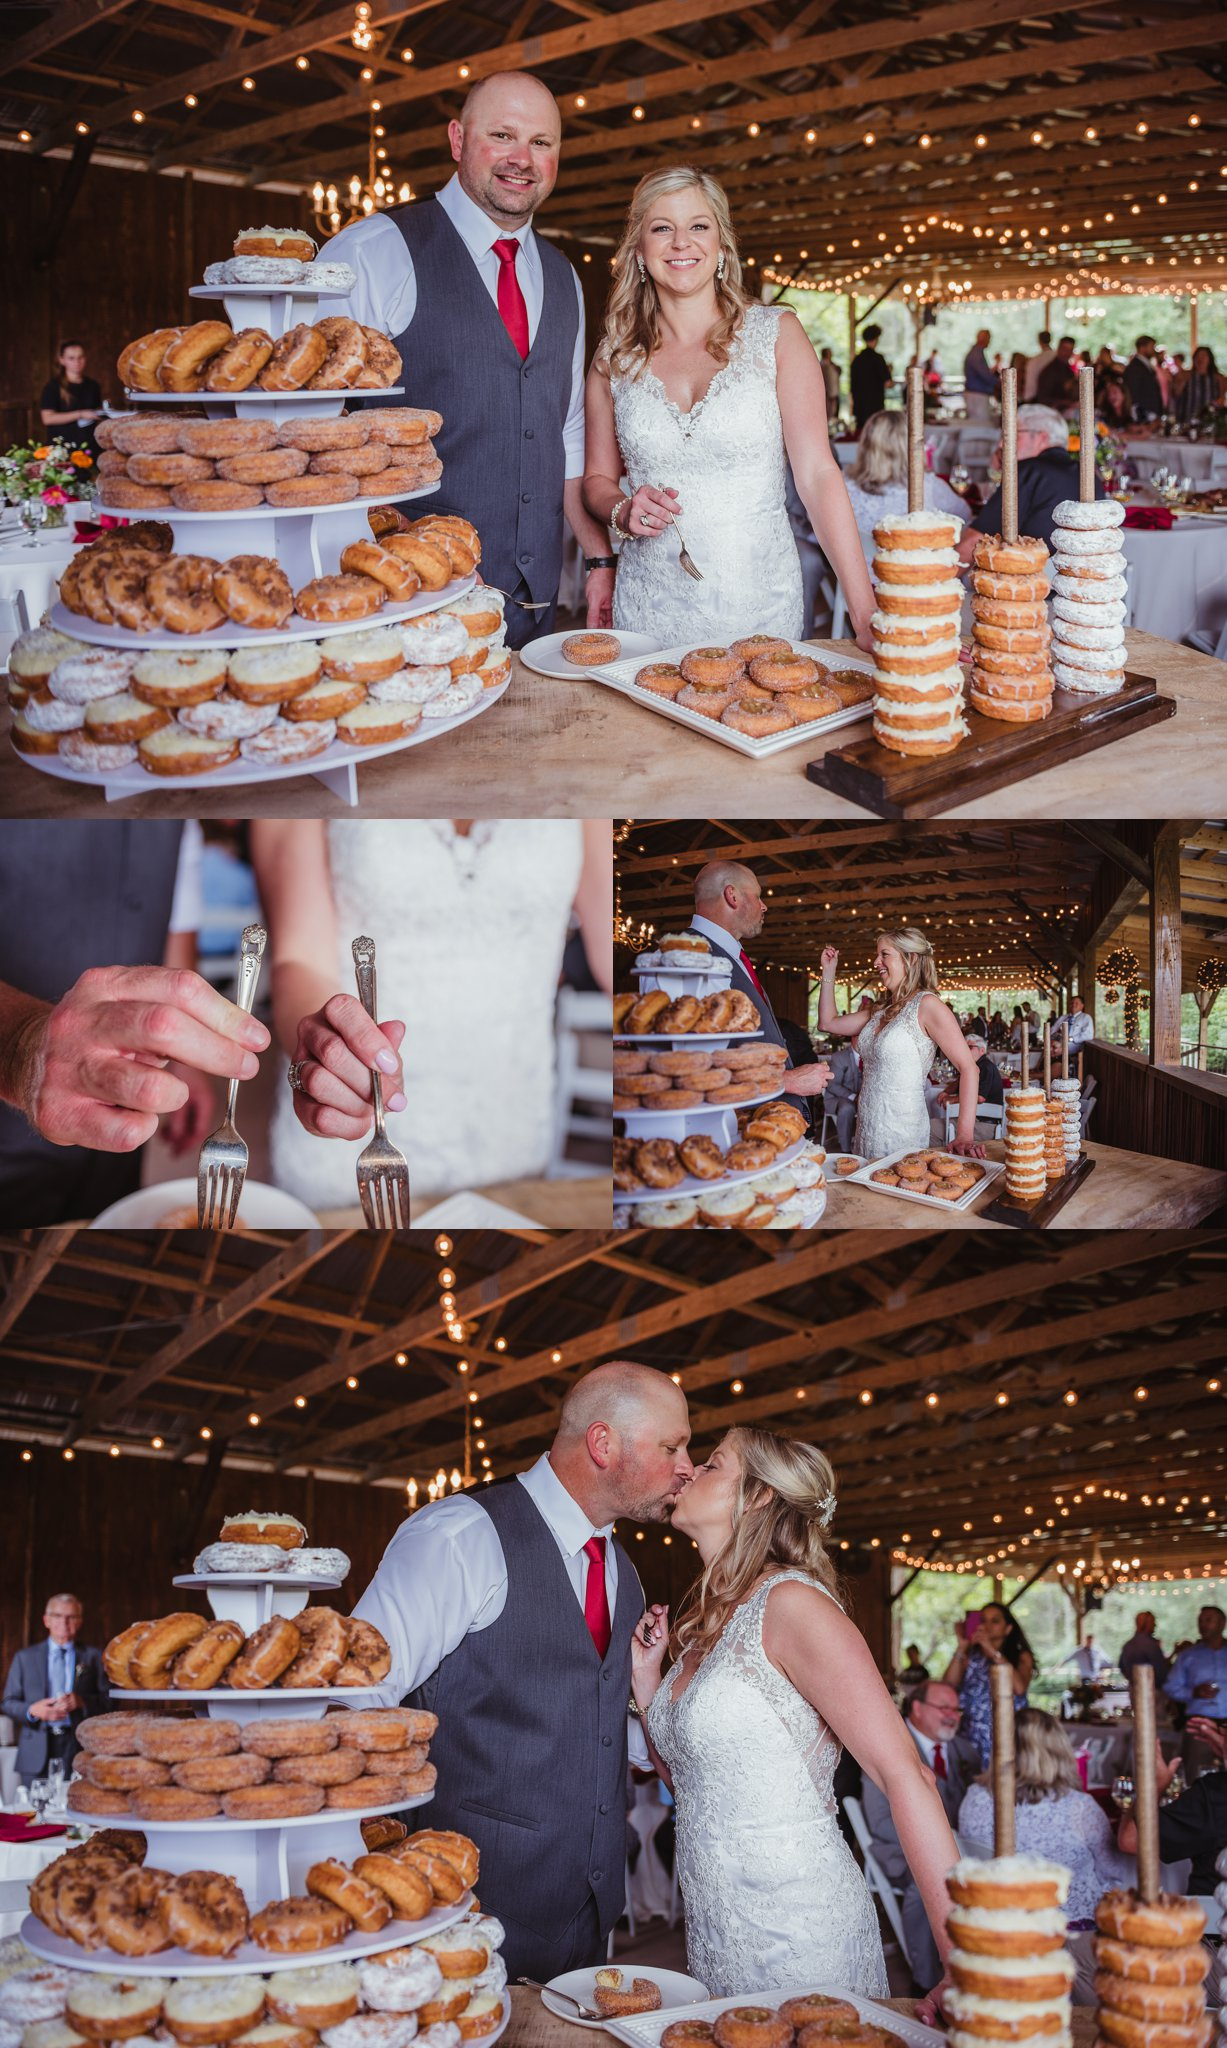 The bride and groom cut a donut instead of cake during their wedding reception at Cedar Grove Acres near Raleigh, pictures by Rose Trail Images.